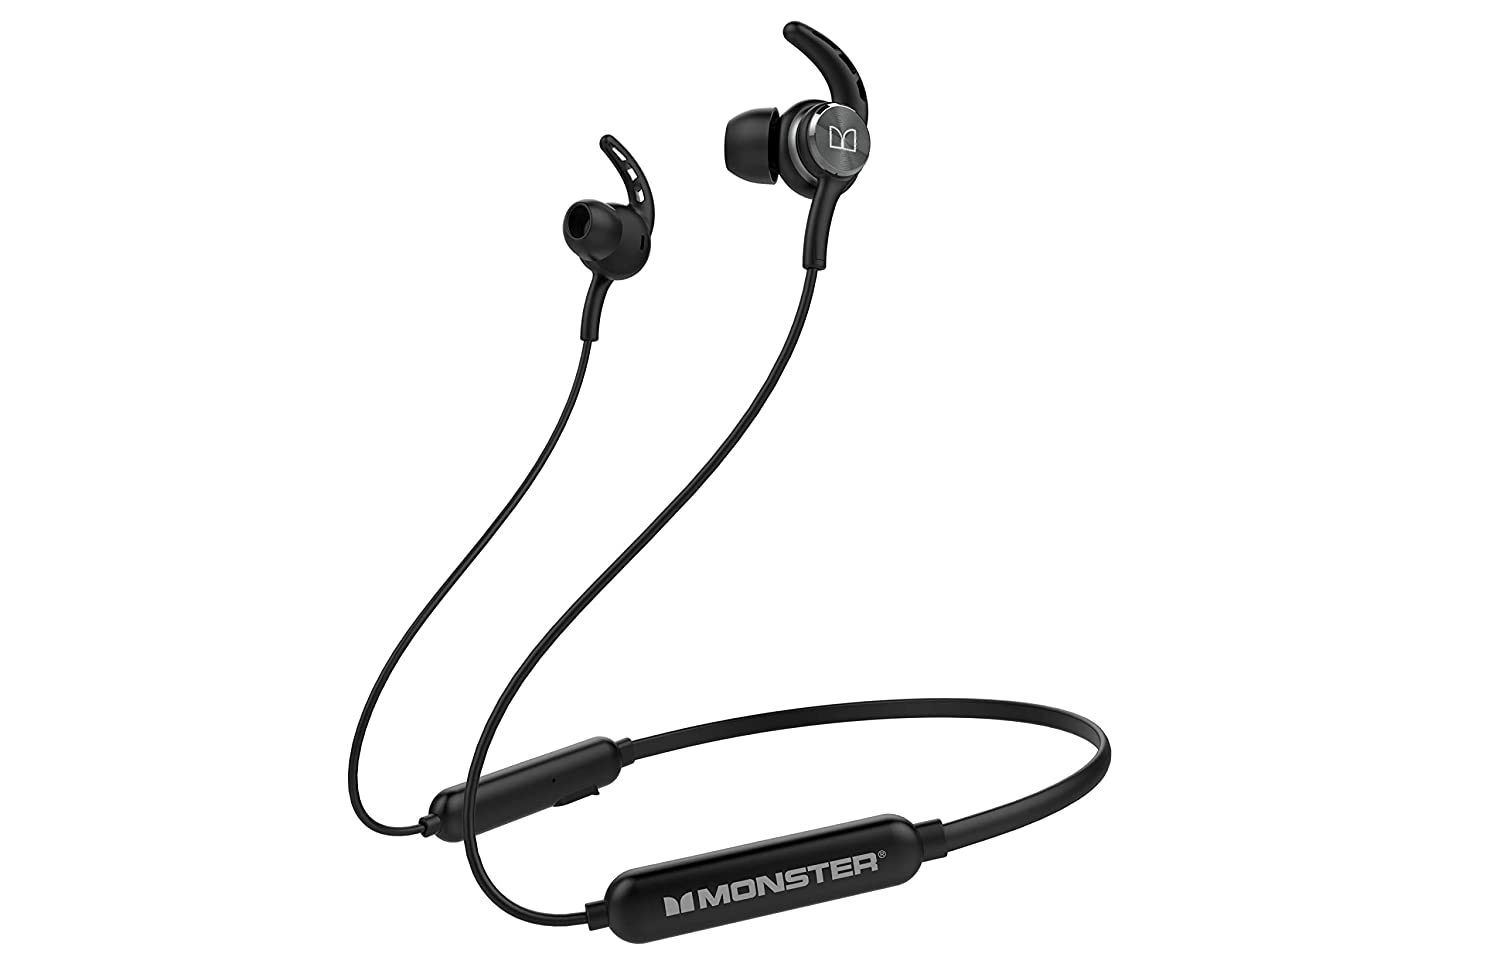 Wireless Headphones,Bluetooth Headphones. Bluetooth 5.0 IPX7 Waterproof 18 Hours Playback time with Magnetic Connection Sports earplugs High Fidelity bass Stereo with Microphone. Used for Fitness